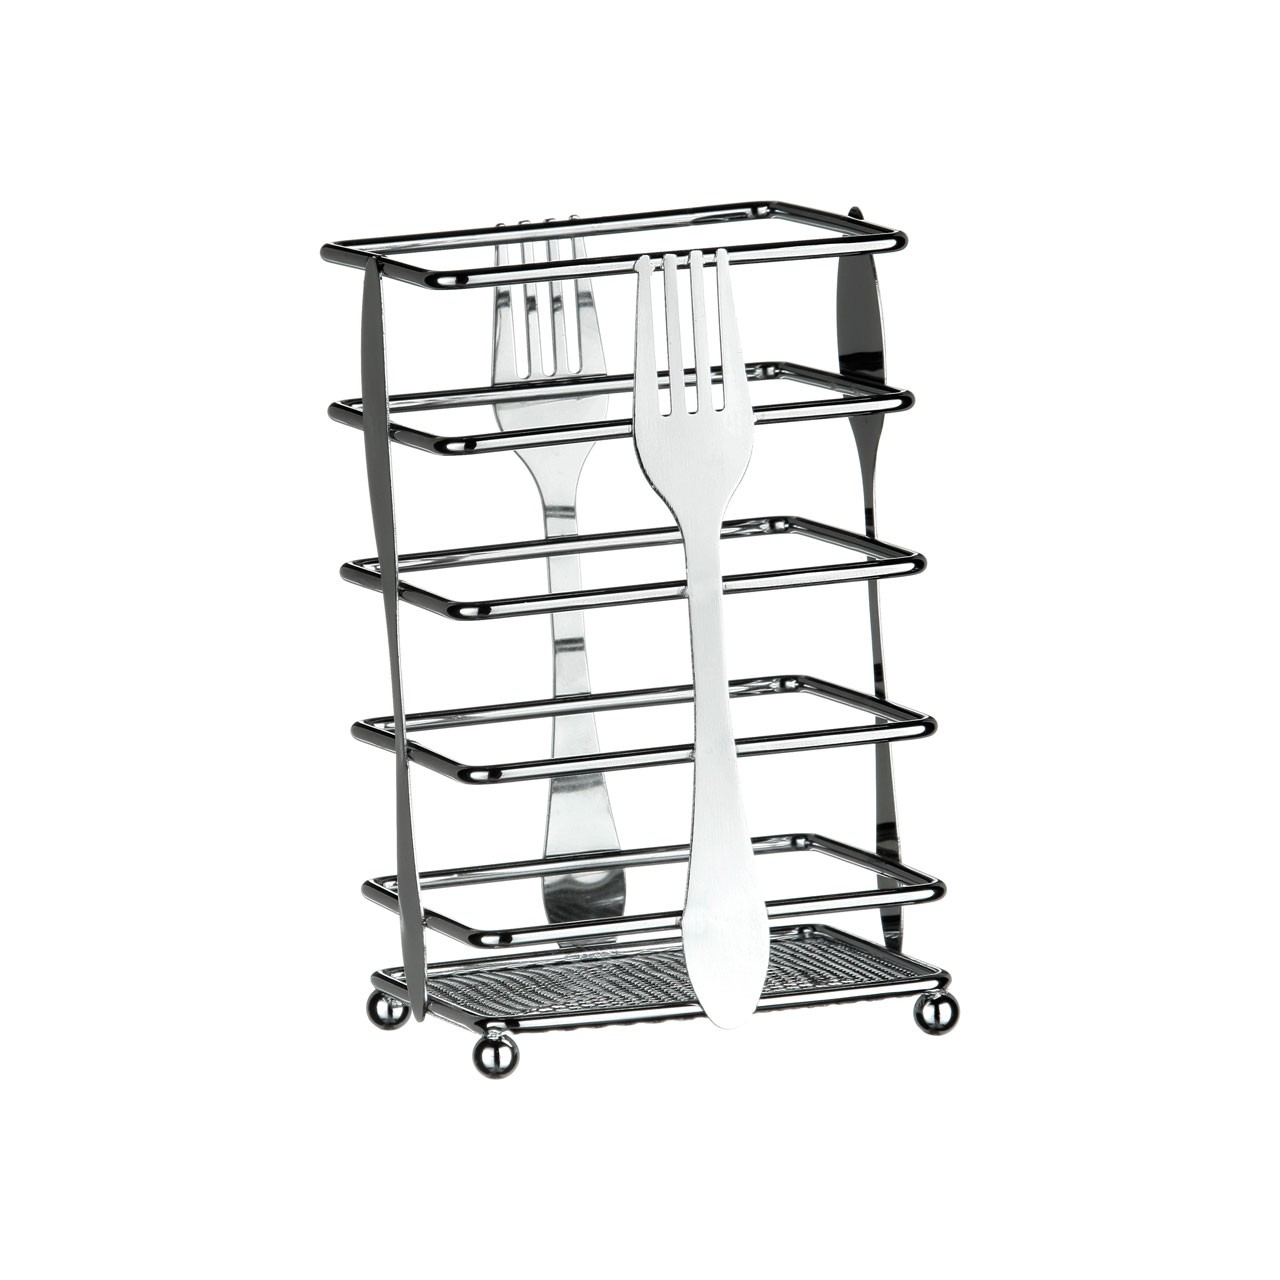 Cutlery Design Cutlery Caddy - Chrome